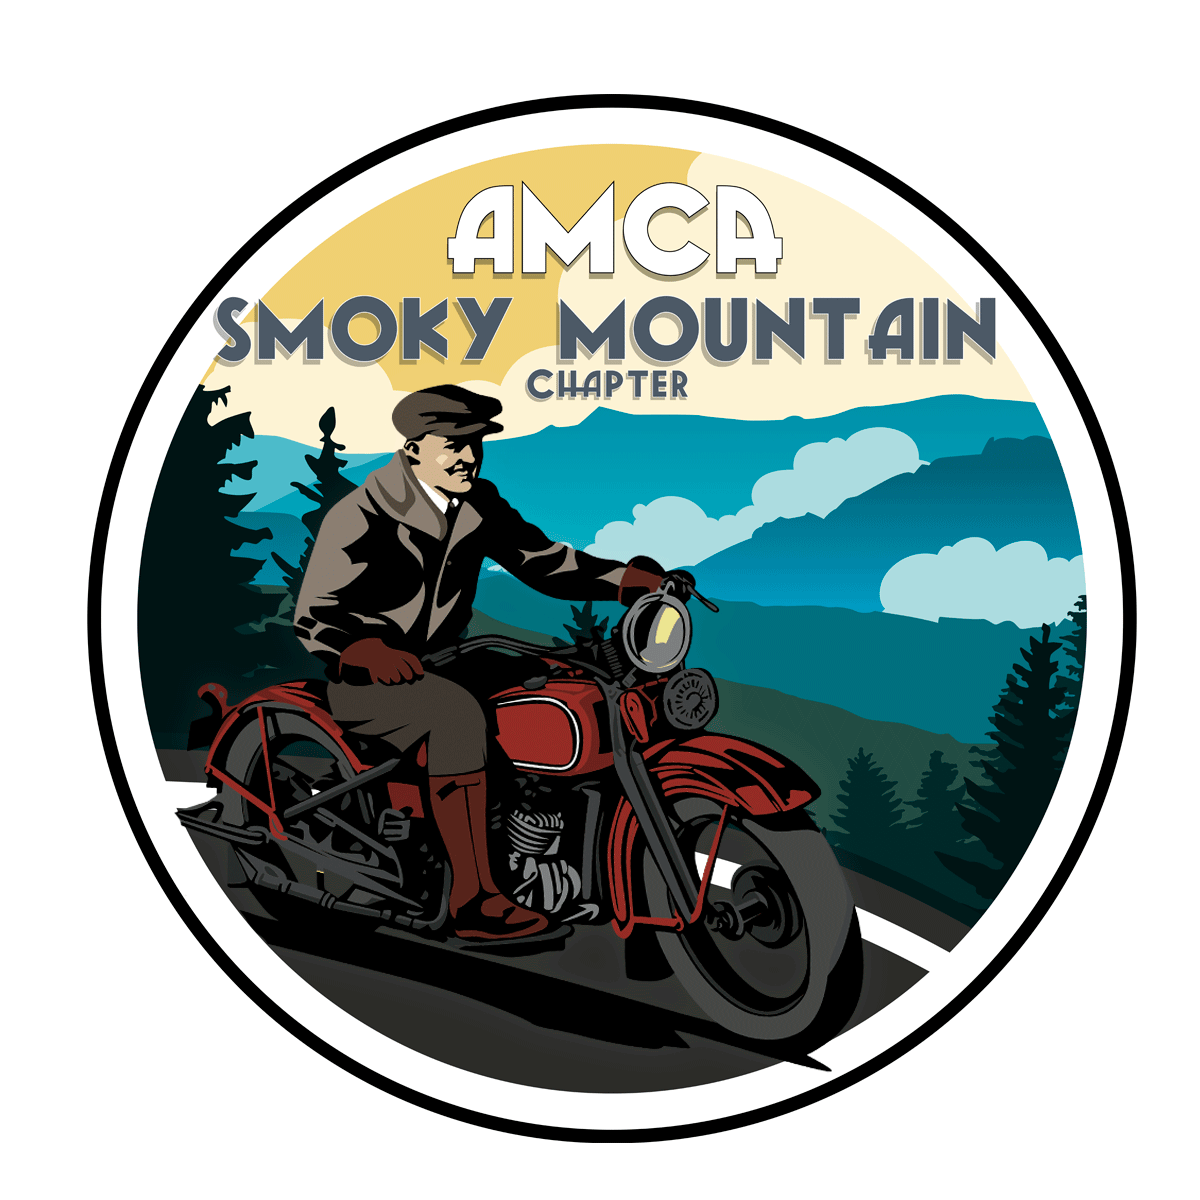 Smoky Mountain Chapter